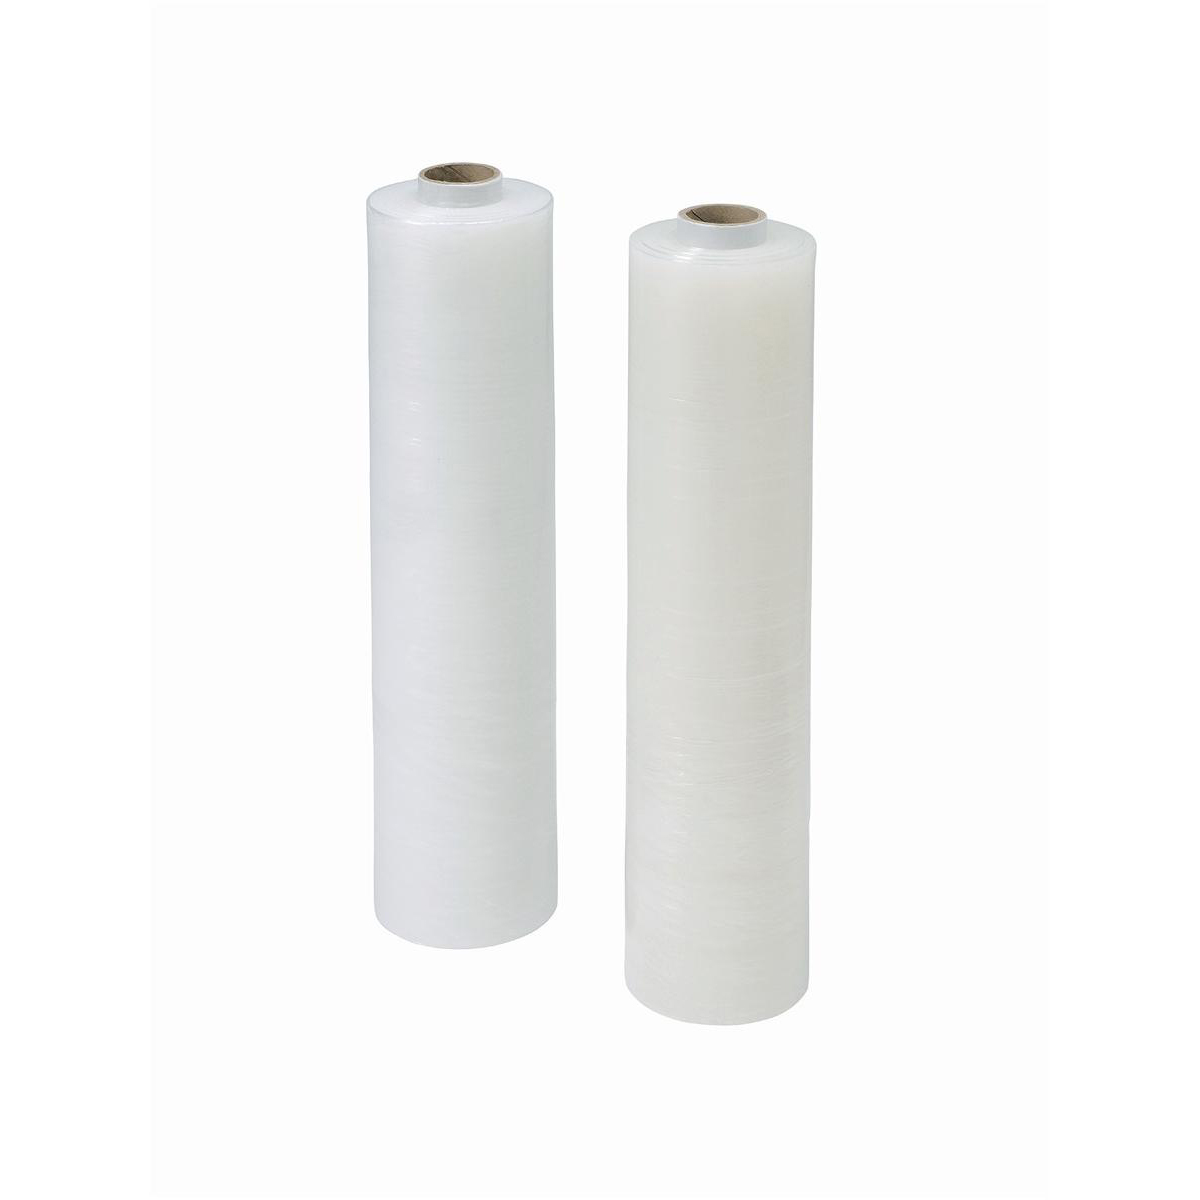 Hand Stretch Film 34 micron 400mmx200m [Pack 6]